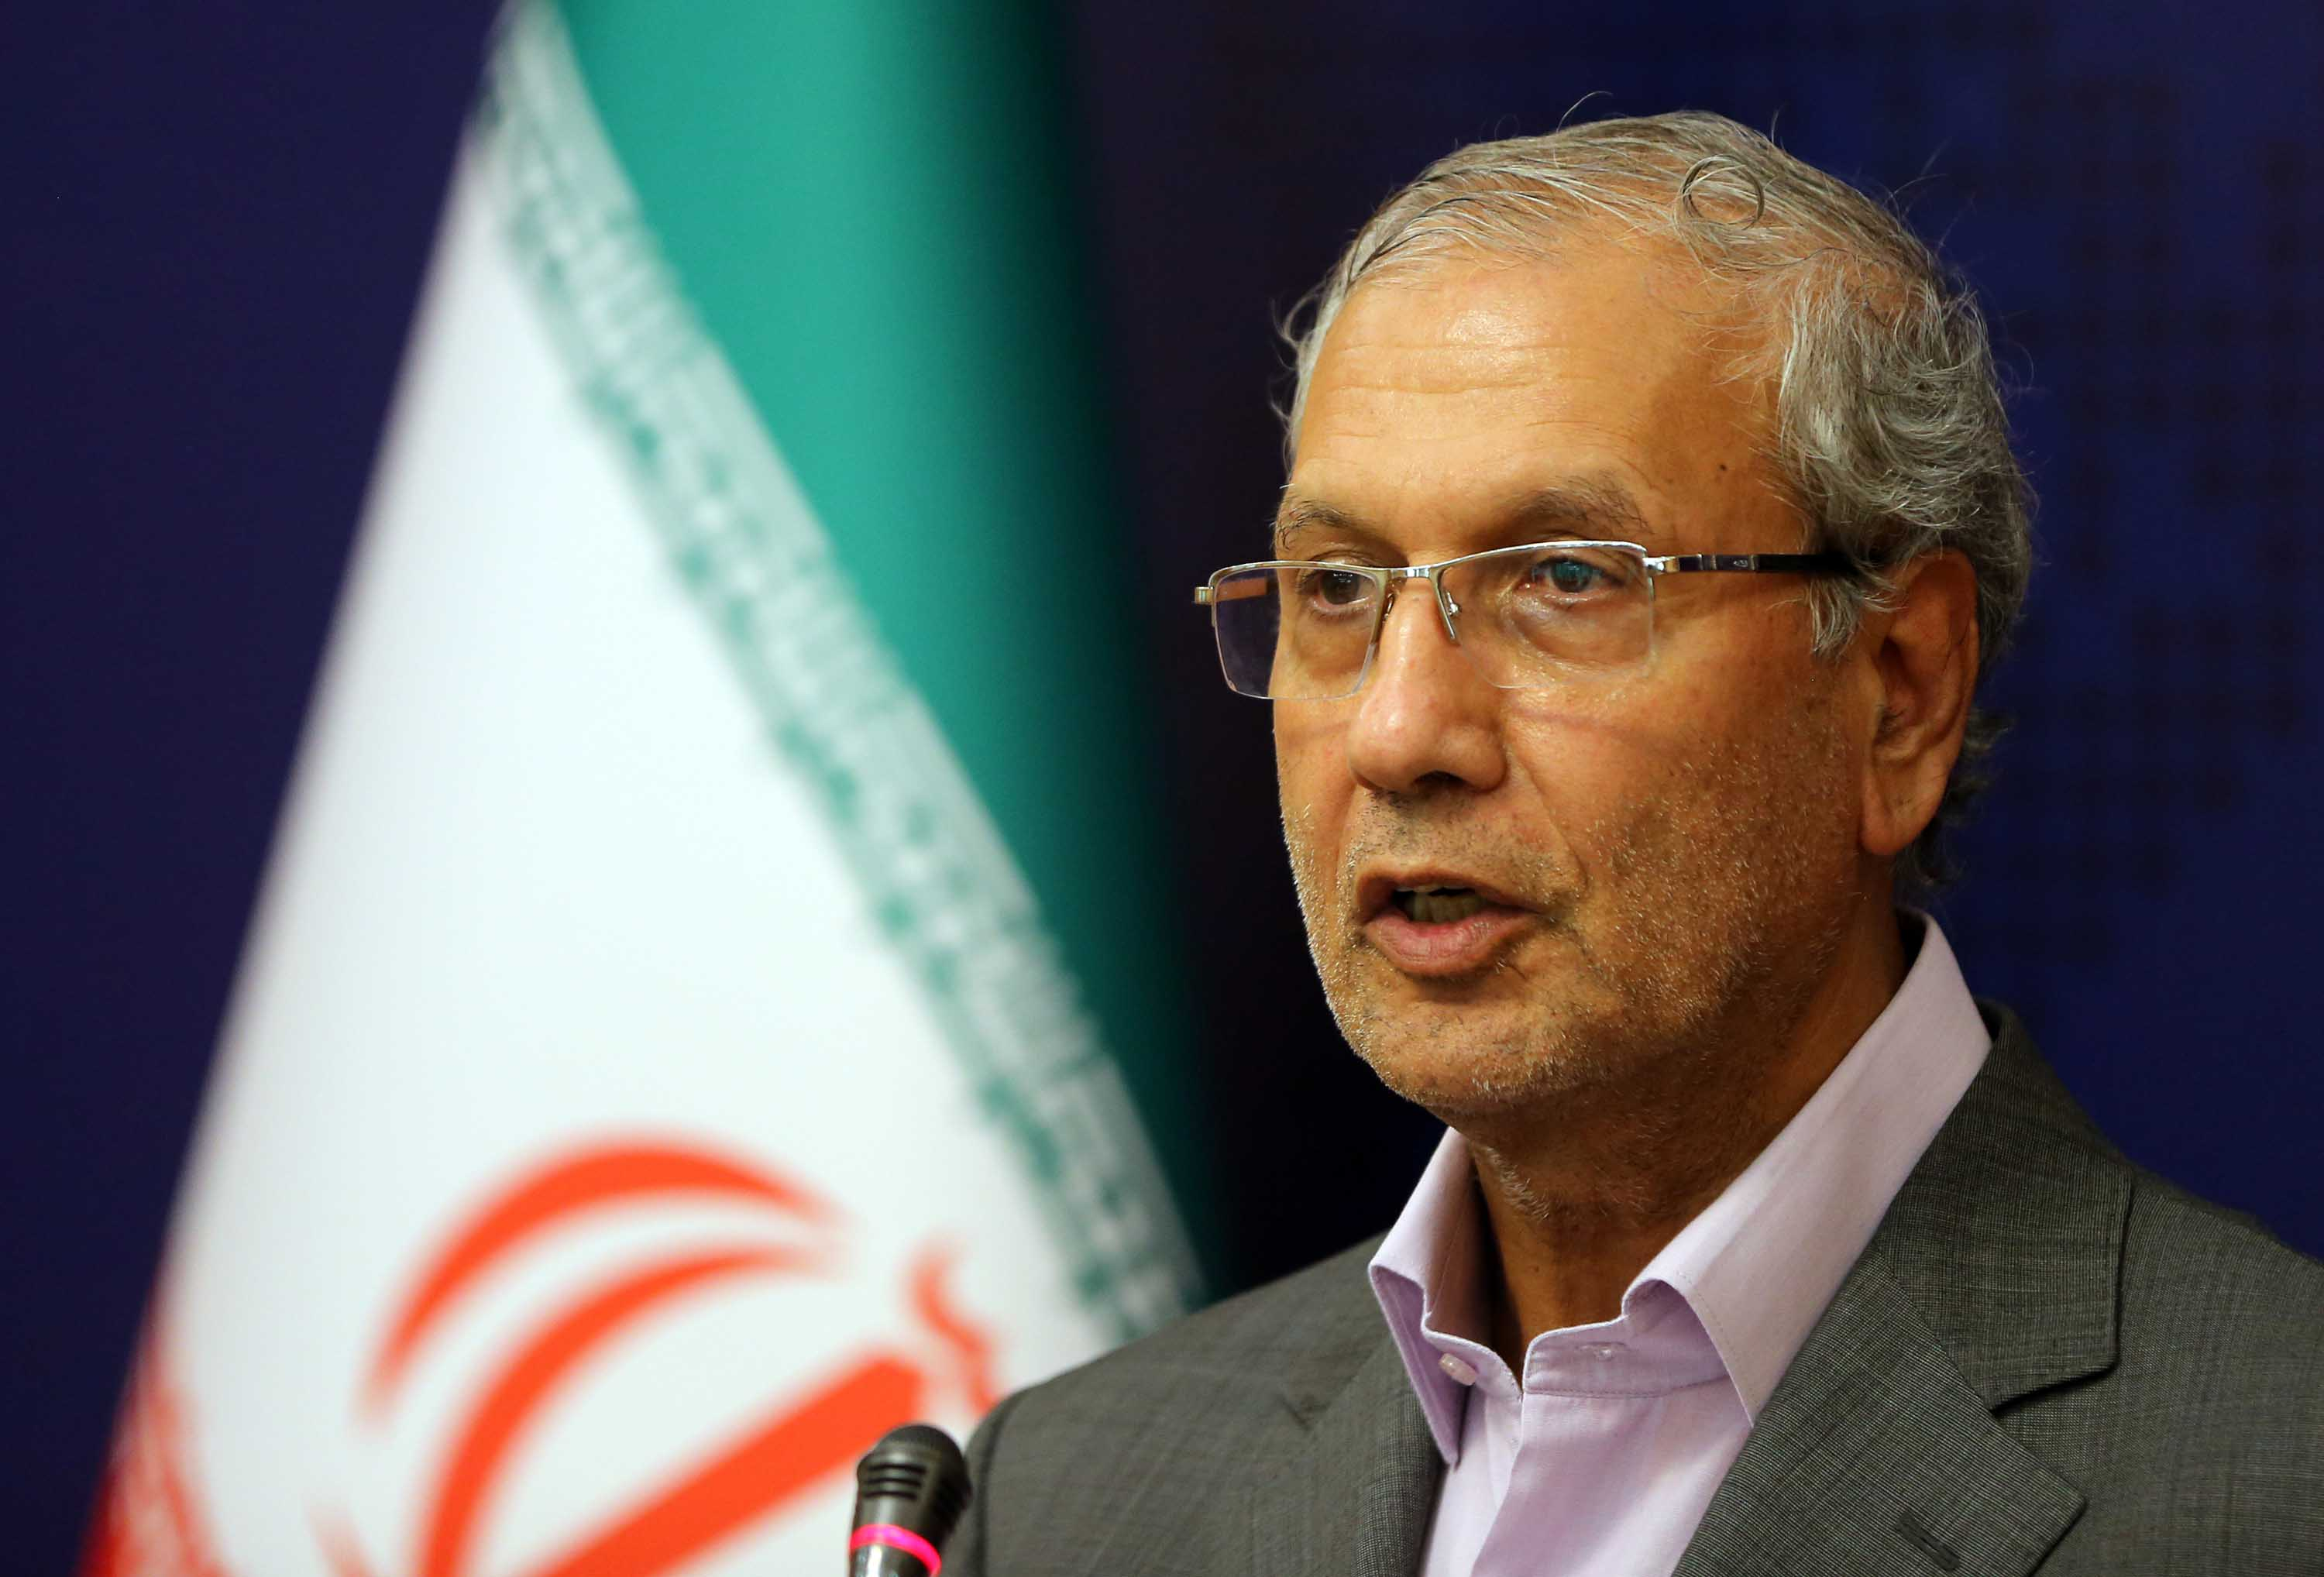 Iranian government spokesman Ali Rabiei is pictured during a news conference in Tehran, Iran in July 2019.